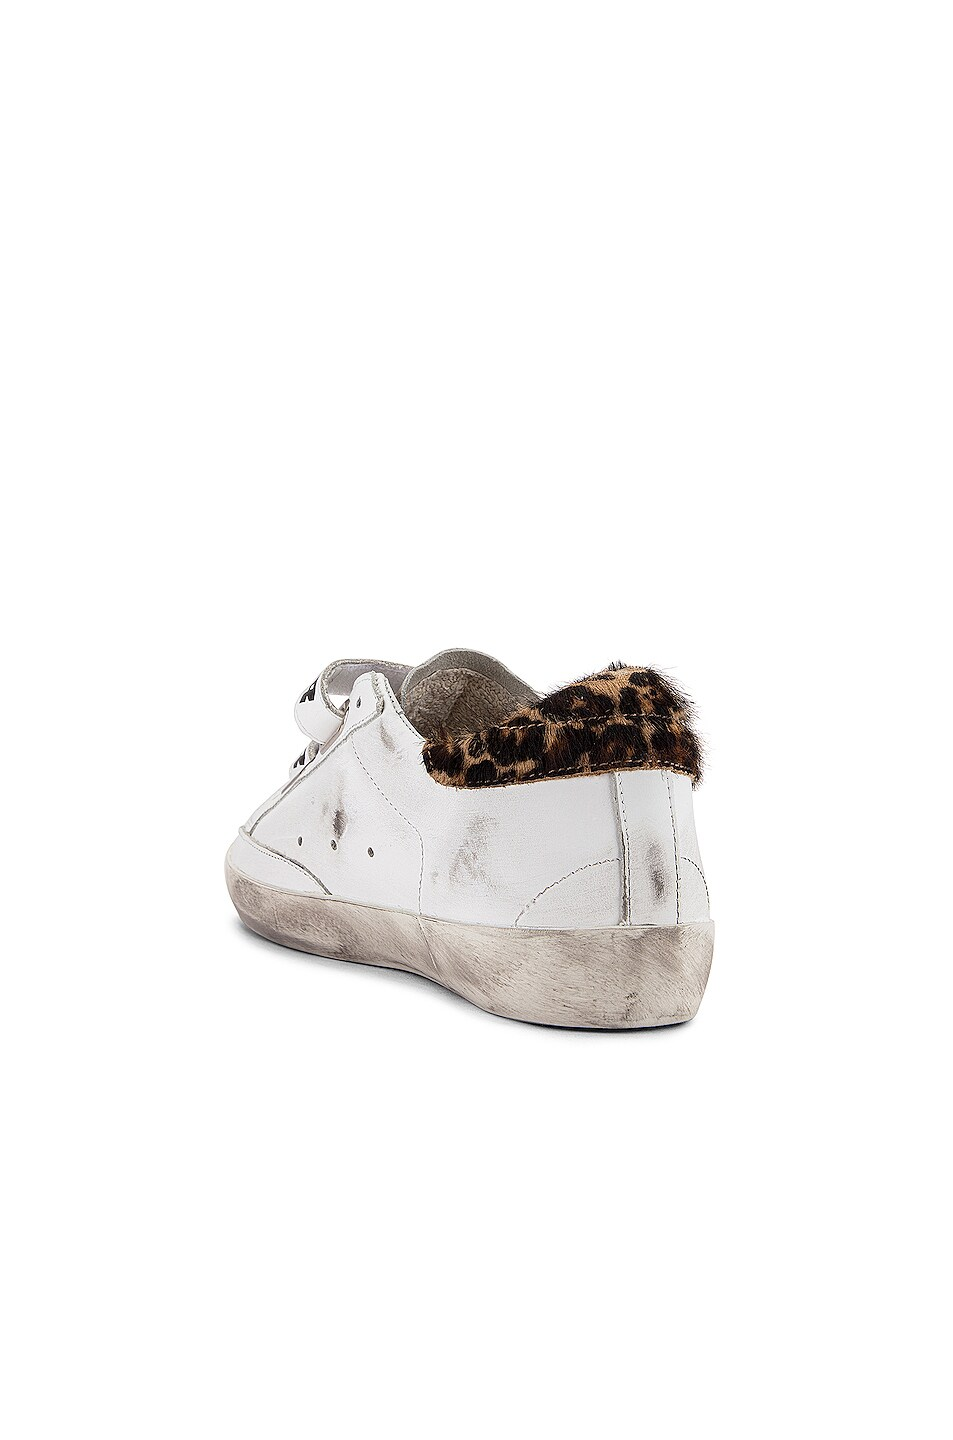 Image 3 of Golden Goose Old School Sneakers in White Leather & Leopard Pony